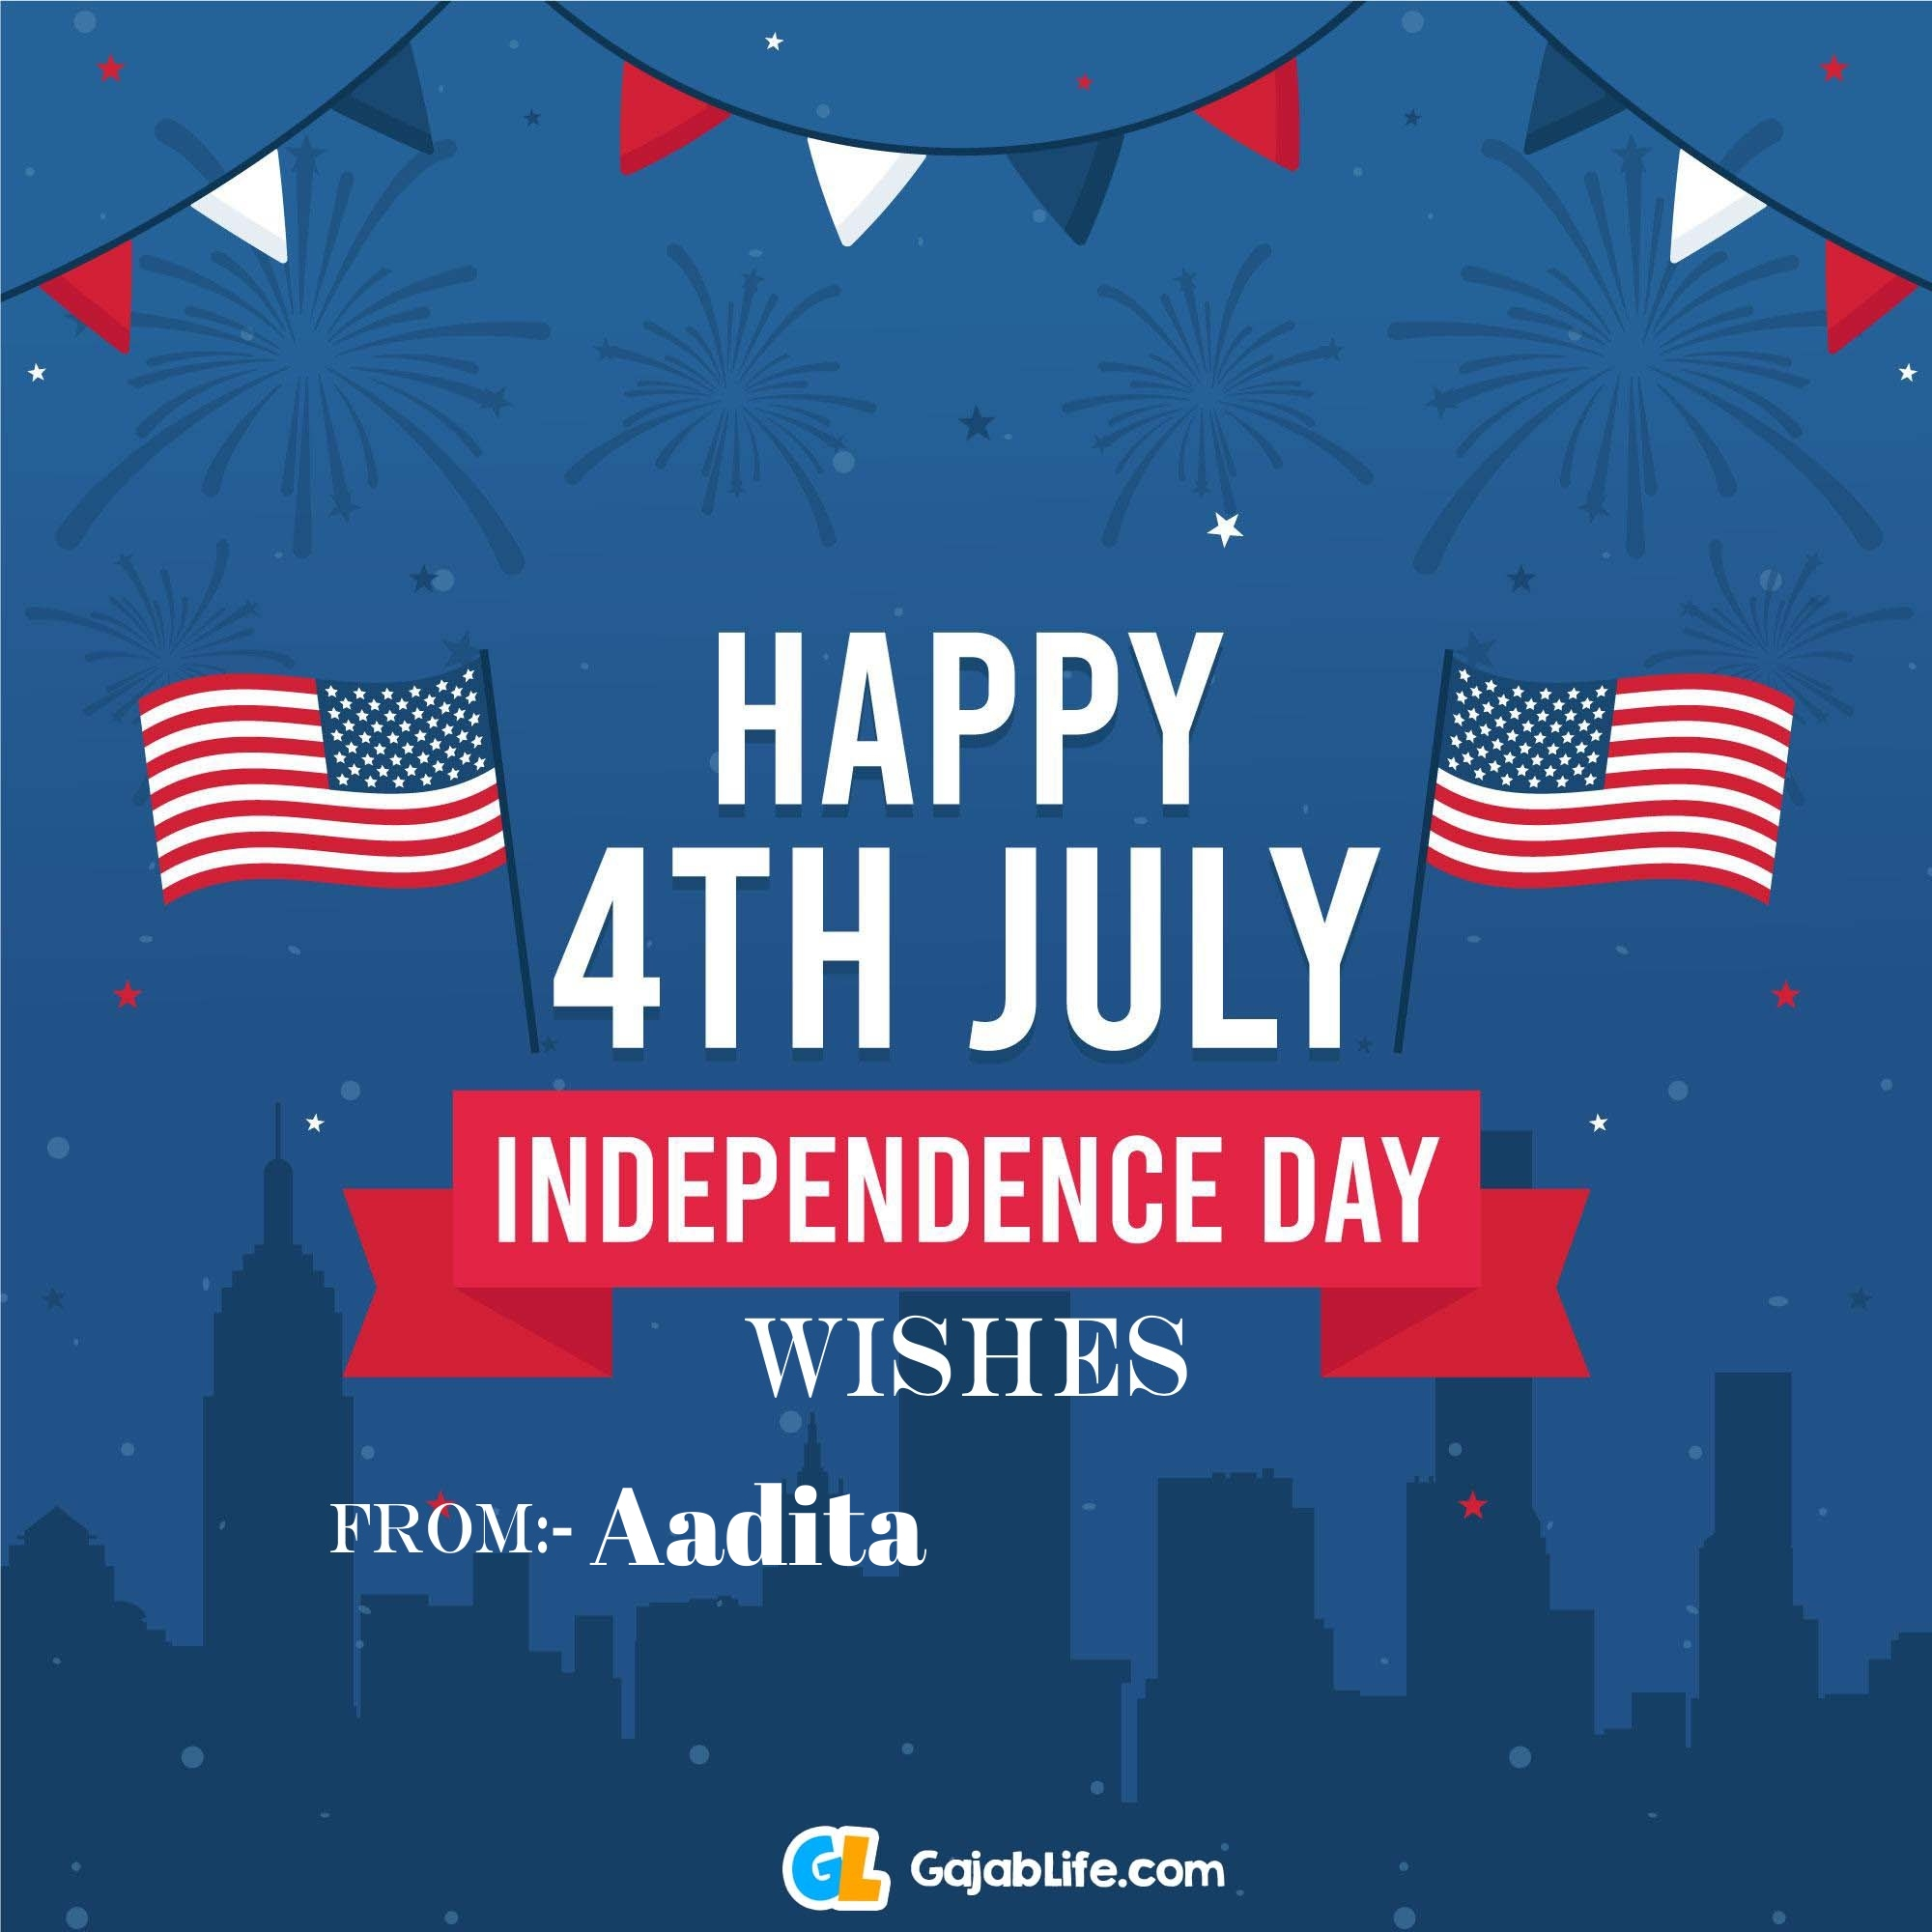 Aadita happy independence day united states of america images